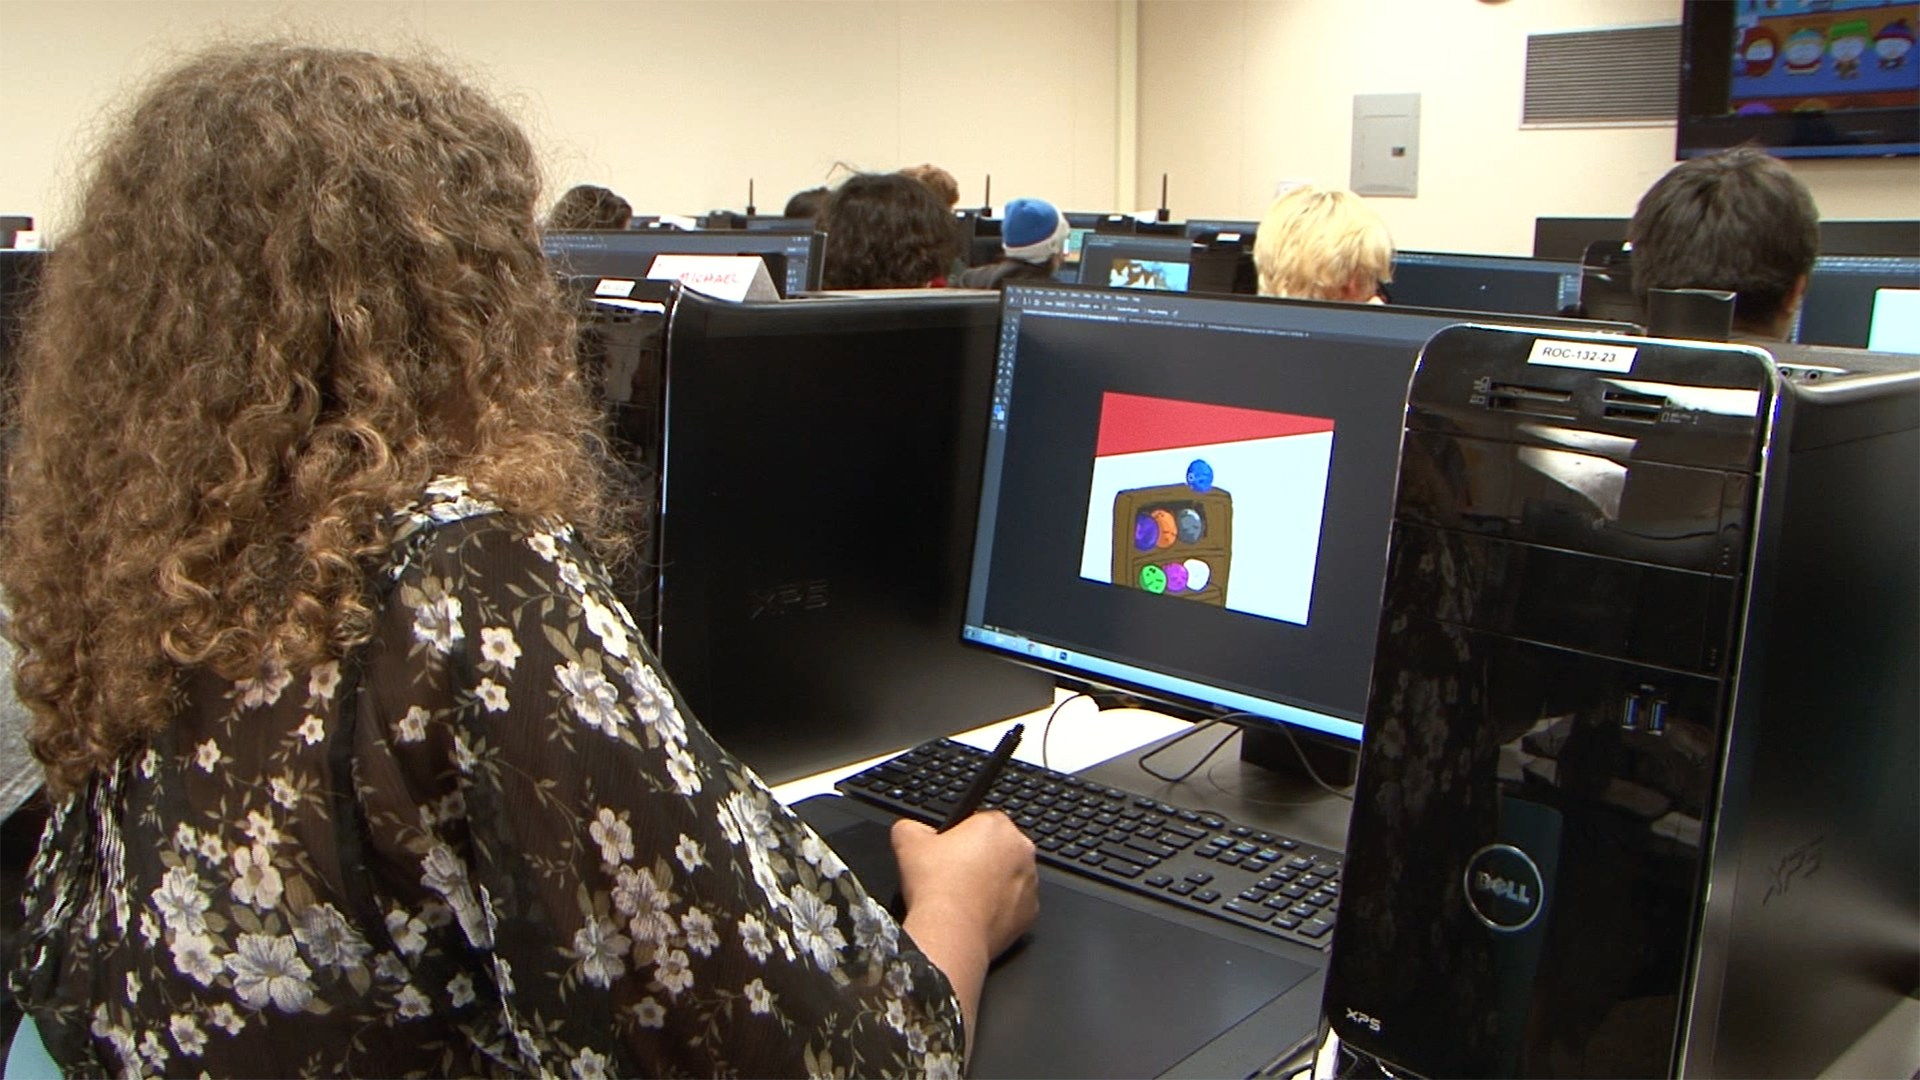 Student working on computer in 3D animation class